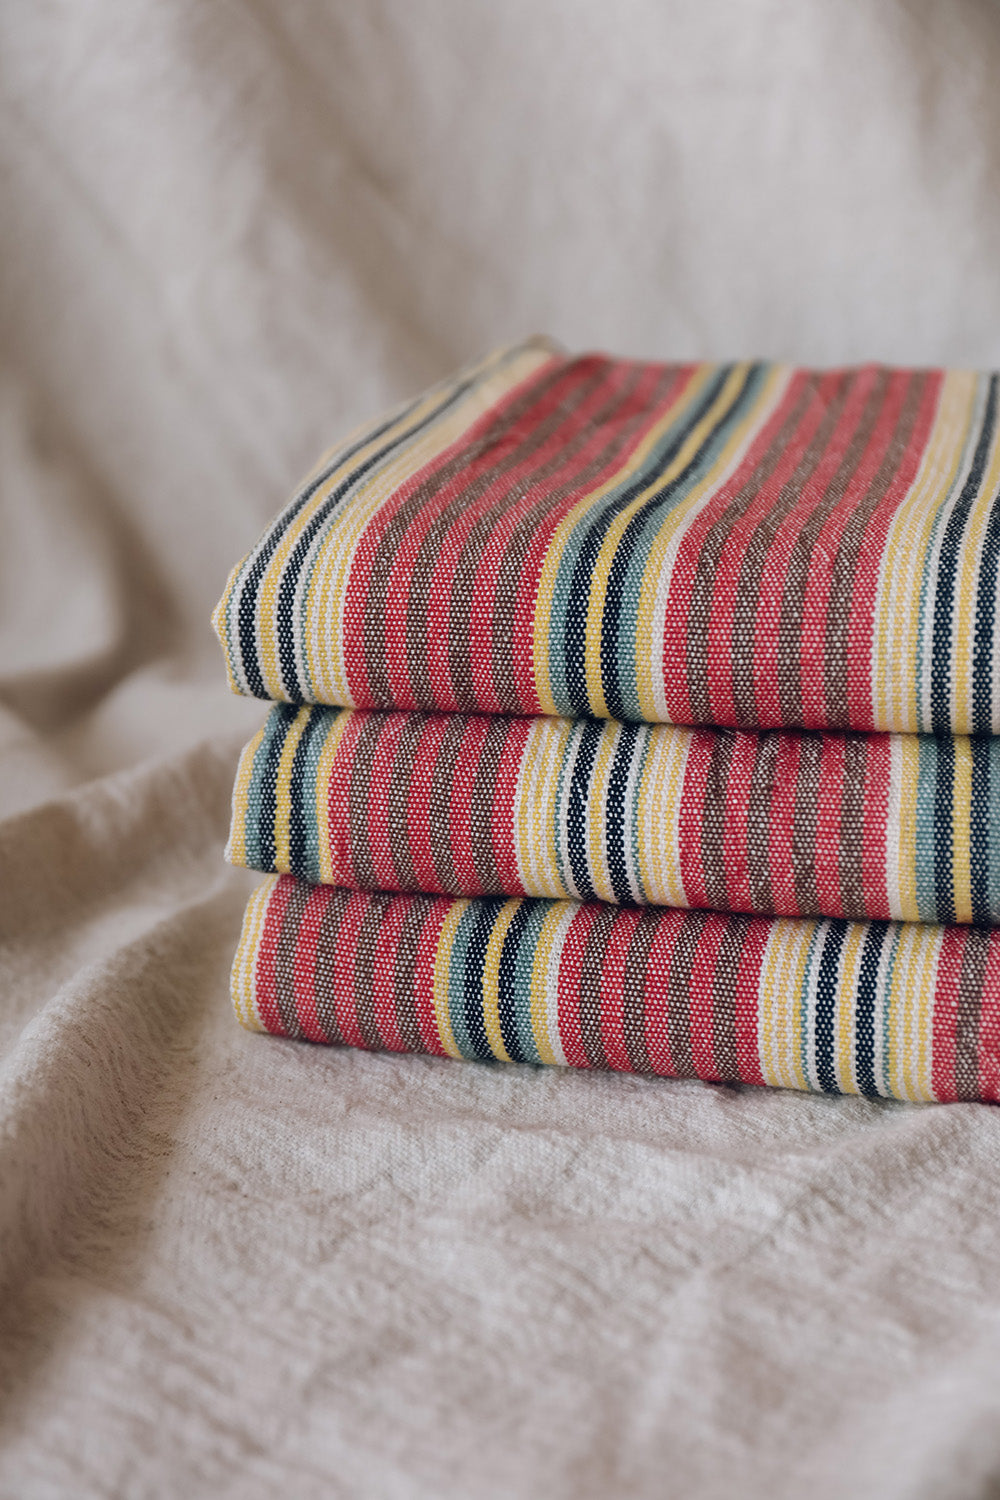 Limited Edition 'Güneš' Handwoven Towel